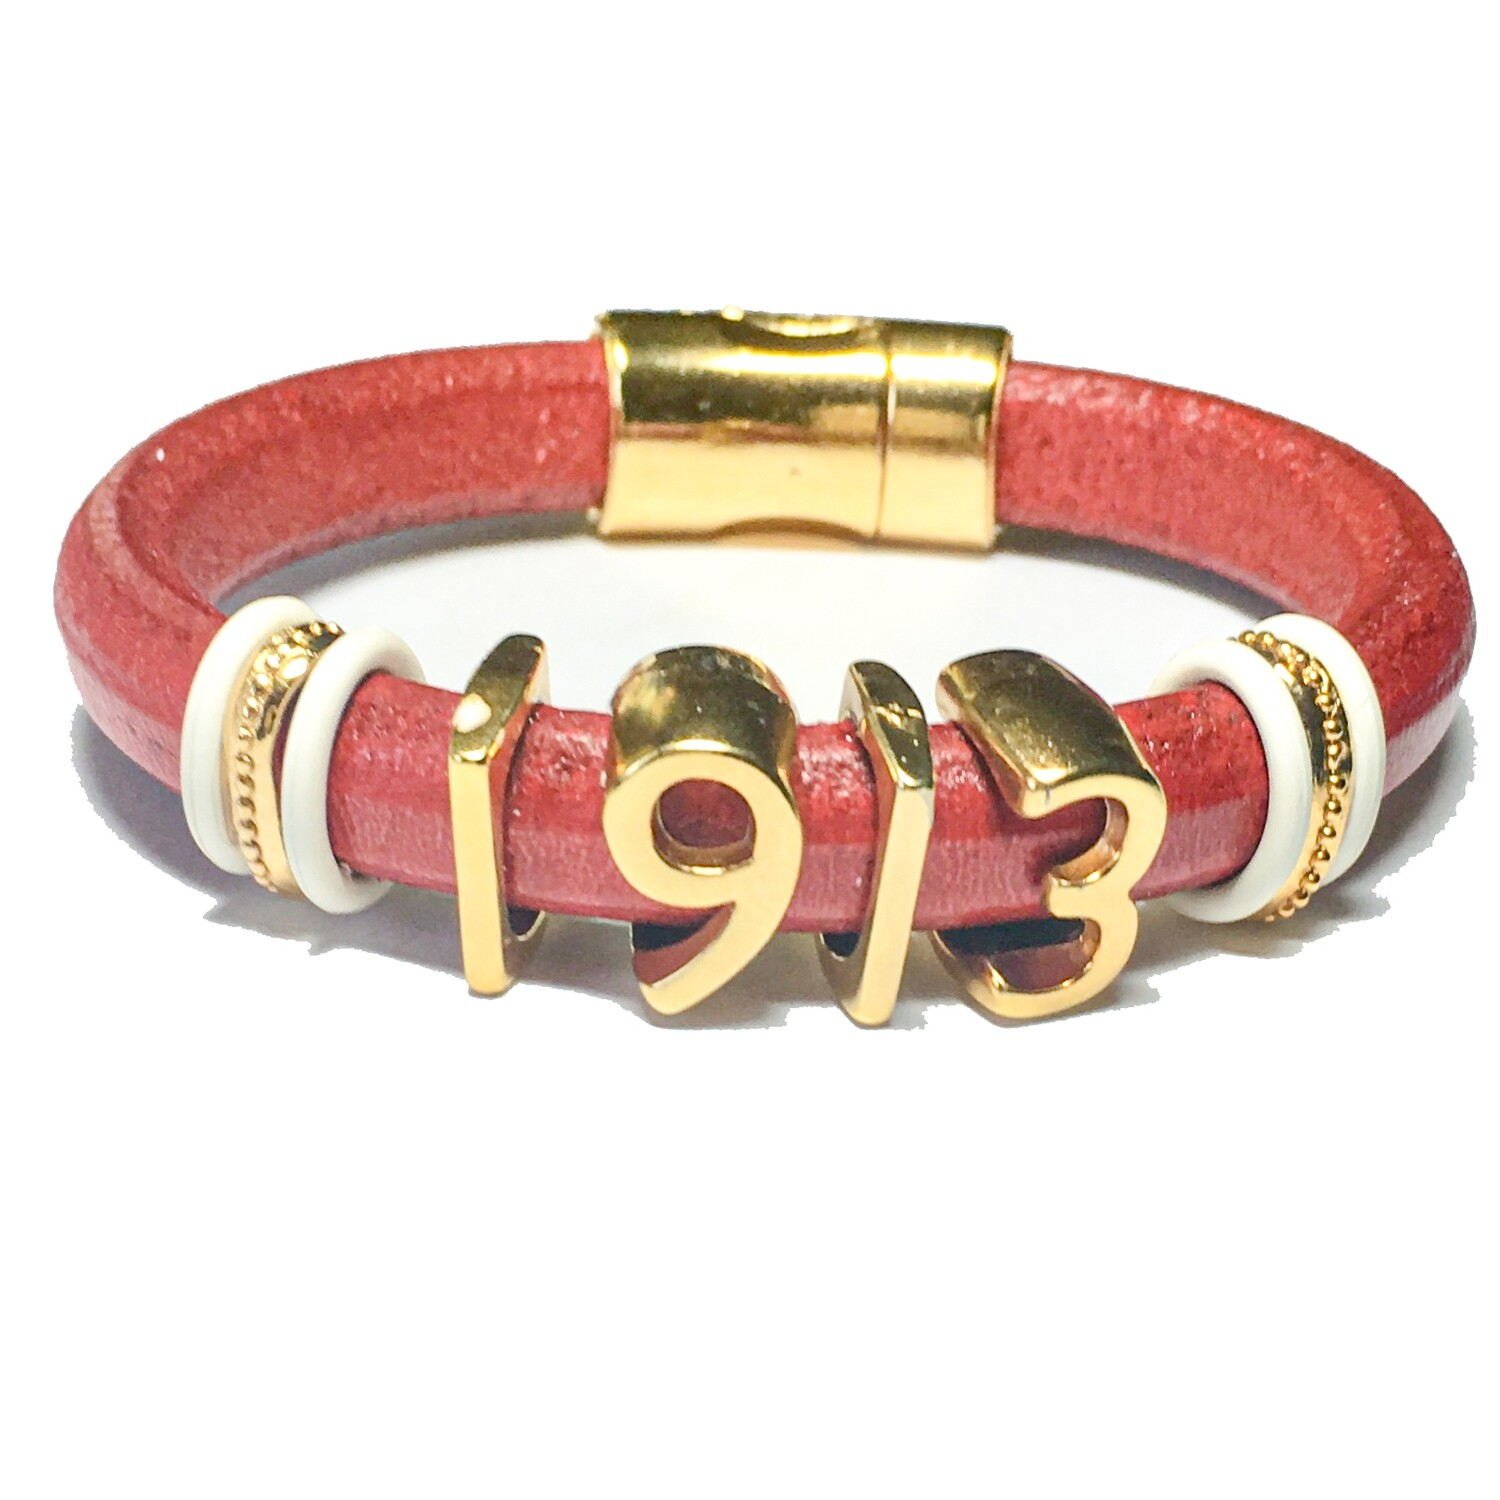 Bracelet | Red Leather With Gold 1913 Numbers Classy Creations Originals